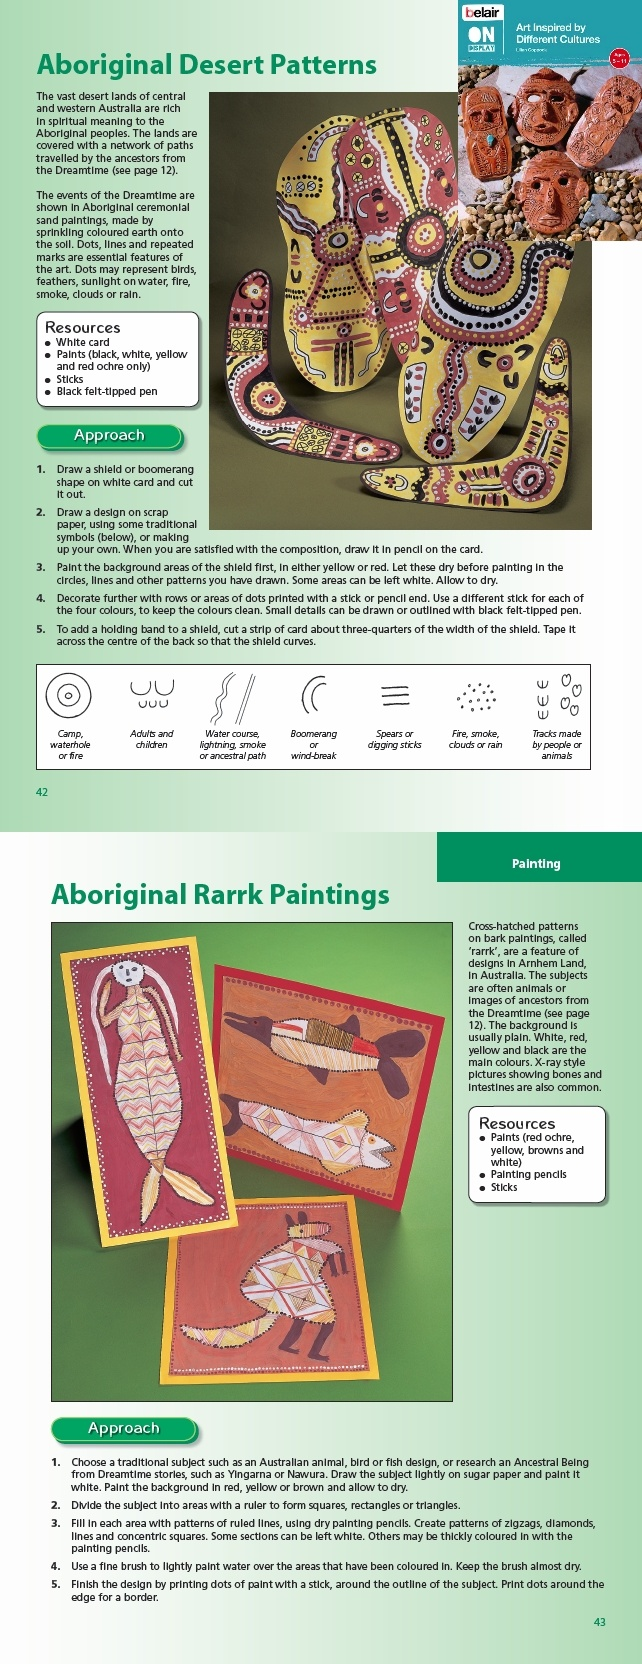 Lovely activity exploring aboriginal art - taken from Belair On Display Art Inspired by Different Cultures